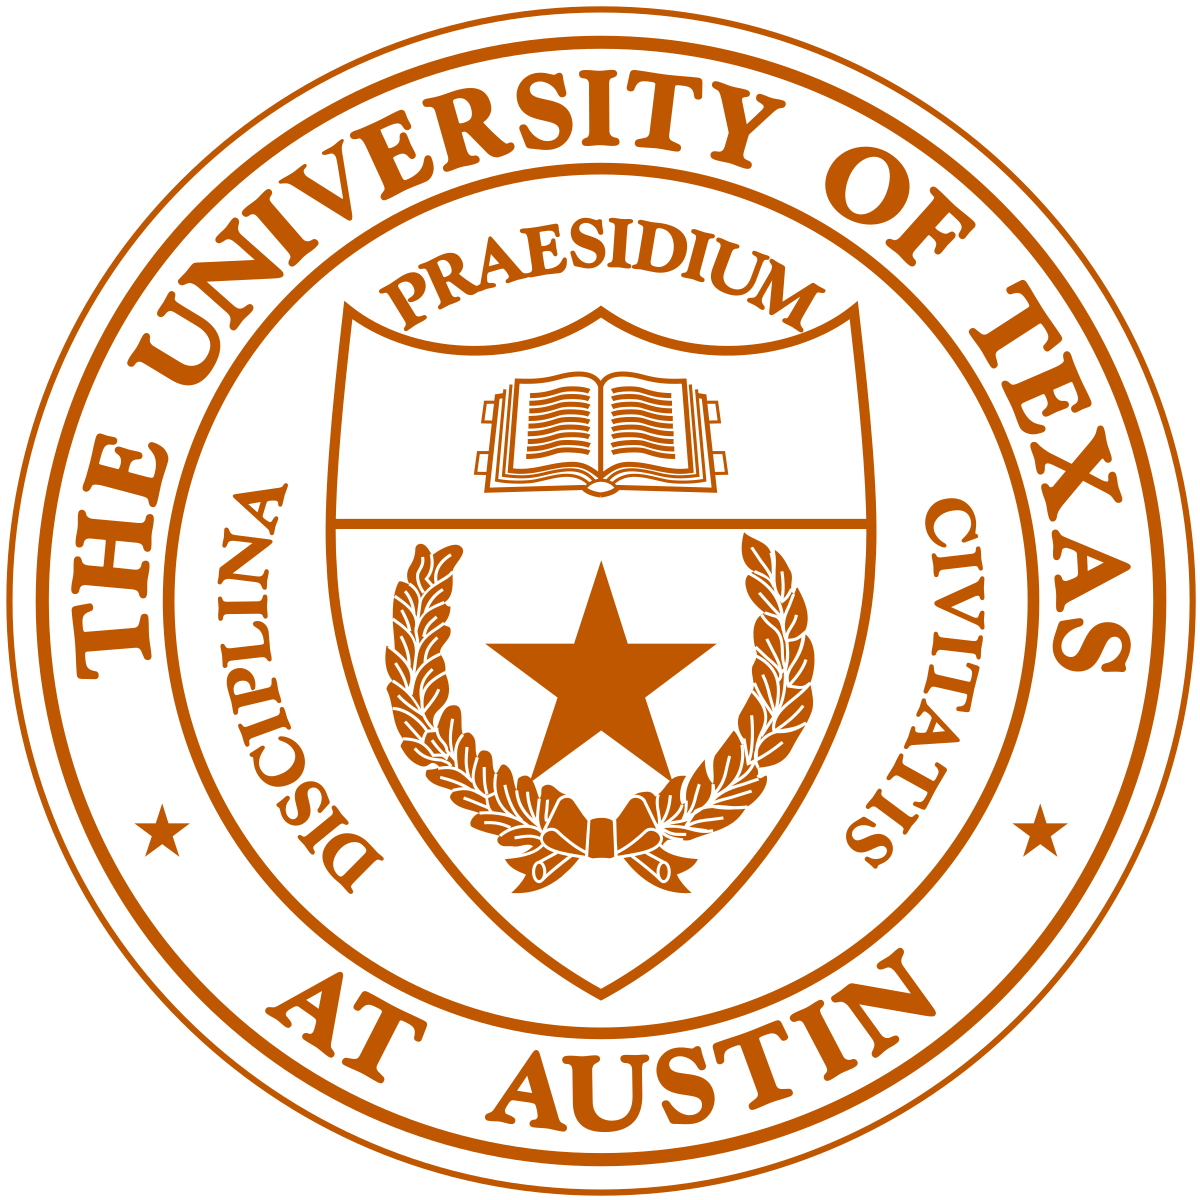 Doctorate from UT Austin